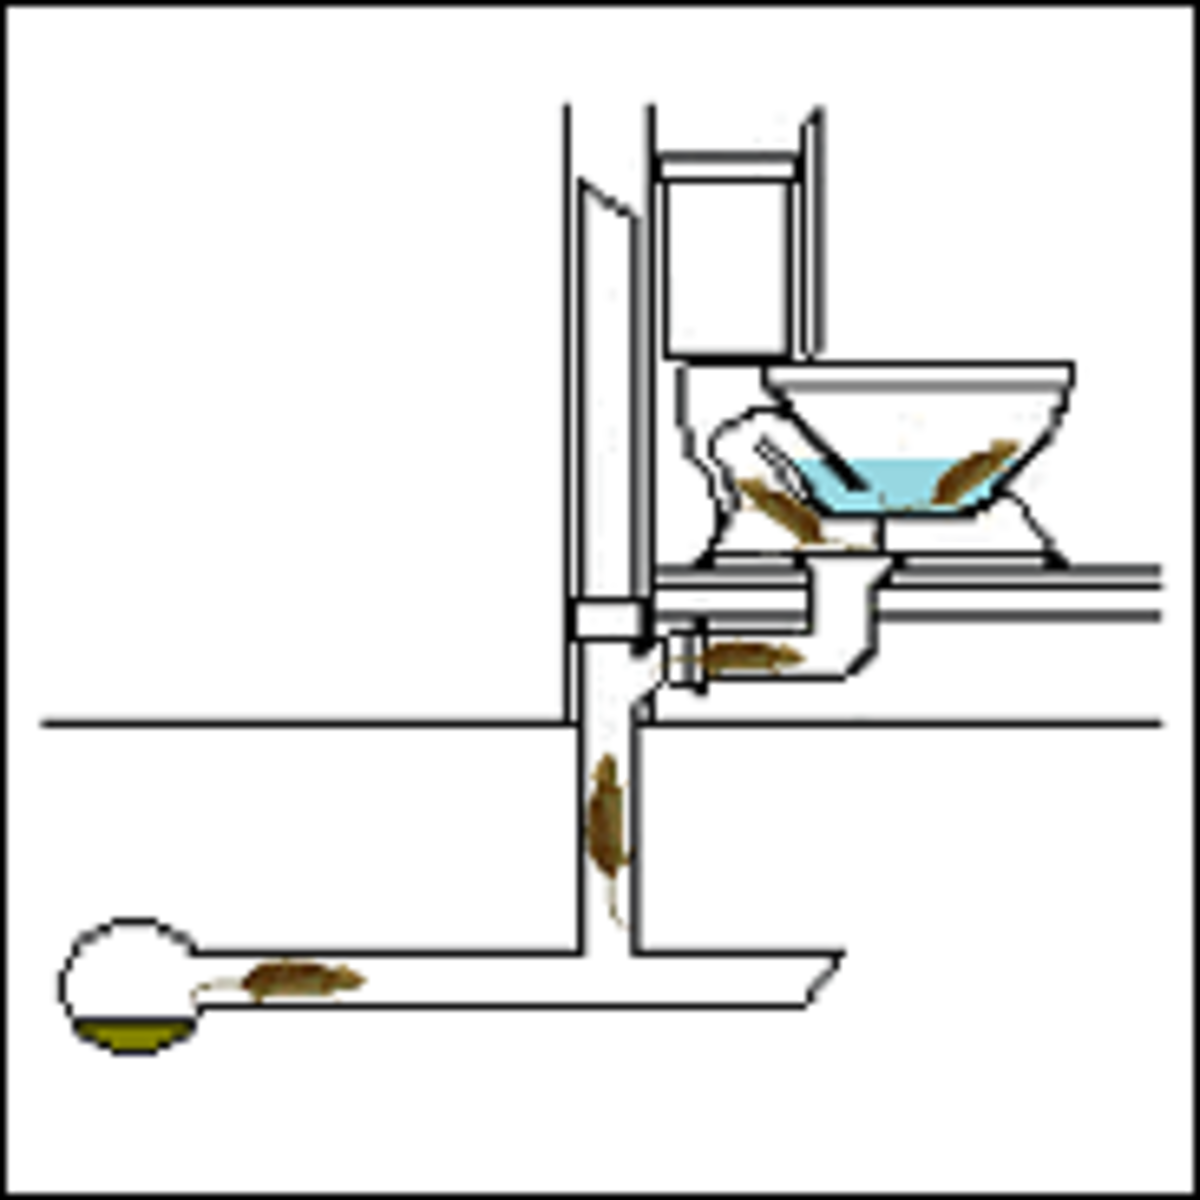 An illustration of how a rat gets into the toilet